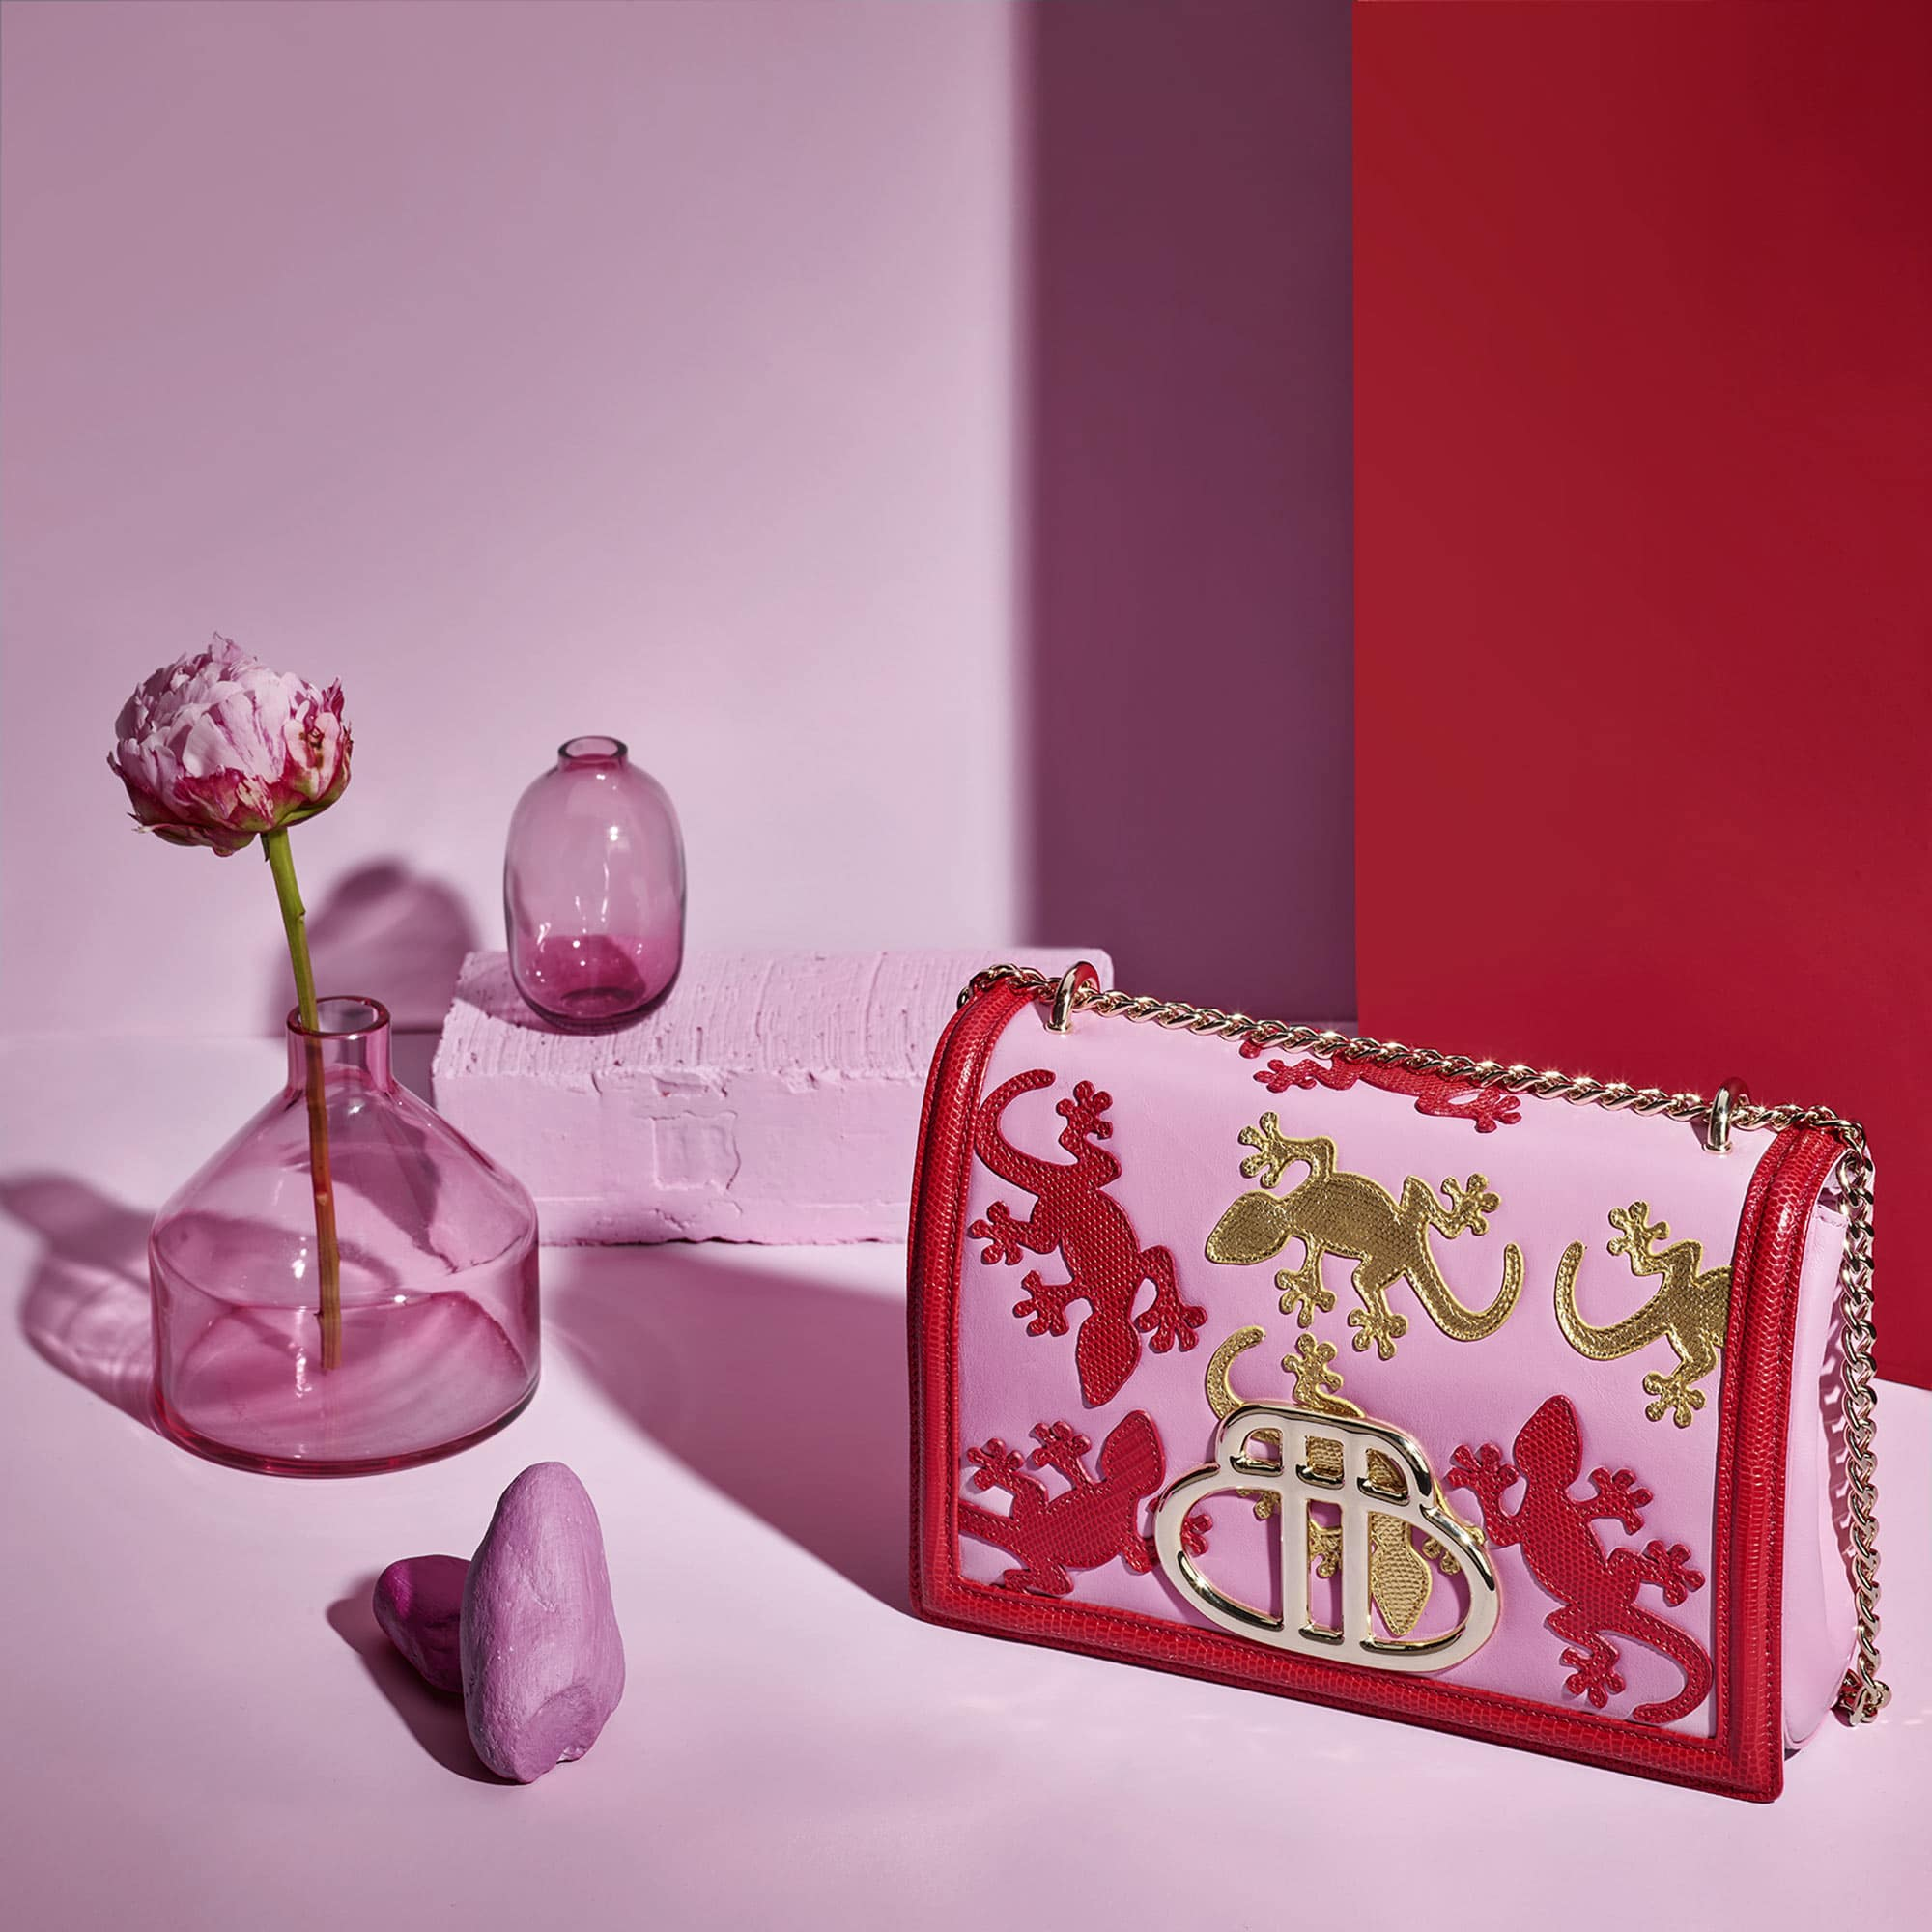 Geko Bag Red Pink Still Life Shot for Barchi by Fotografando